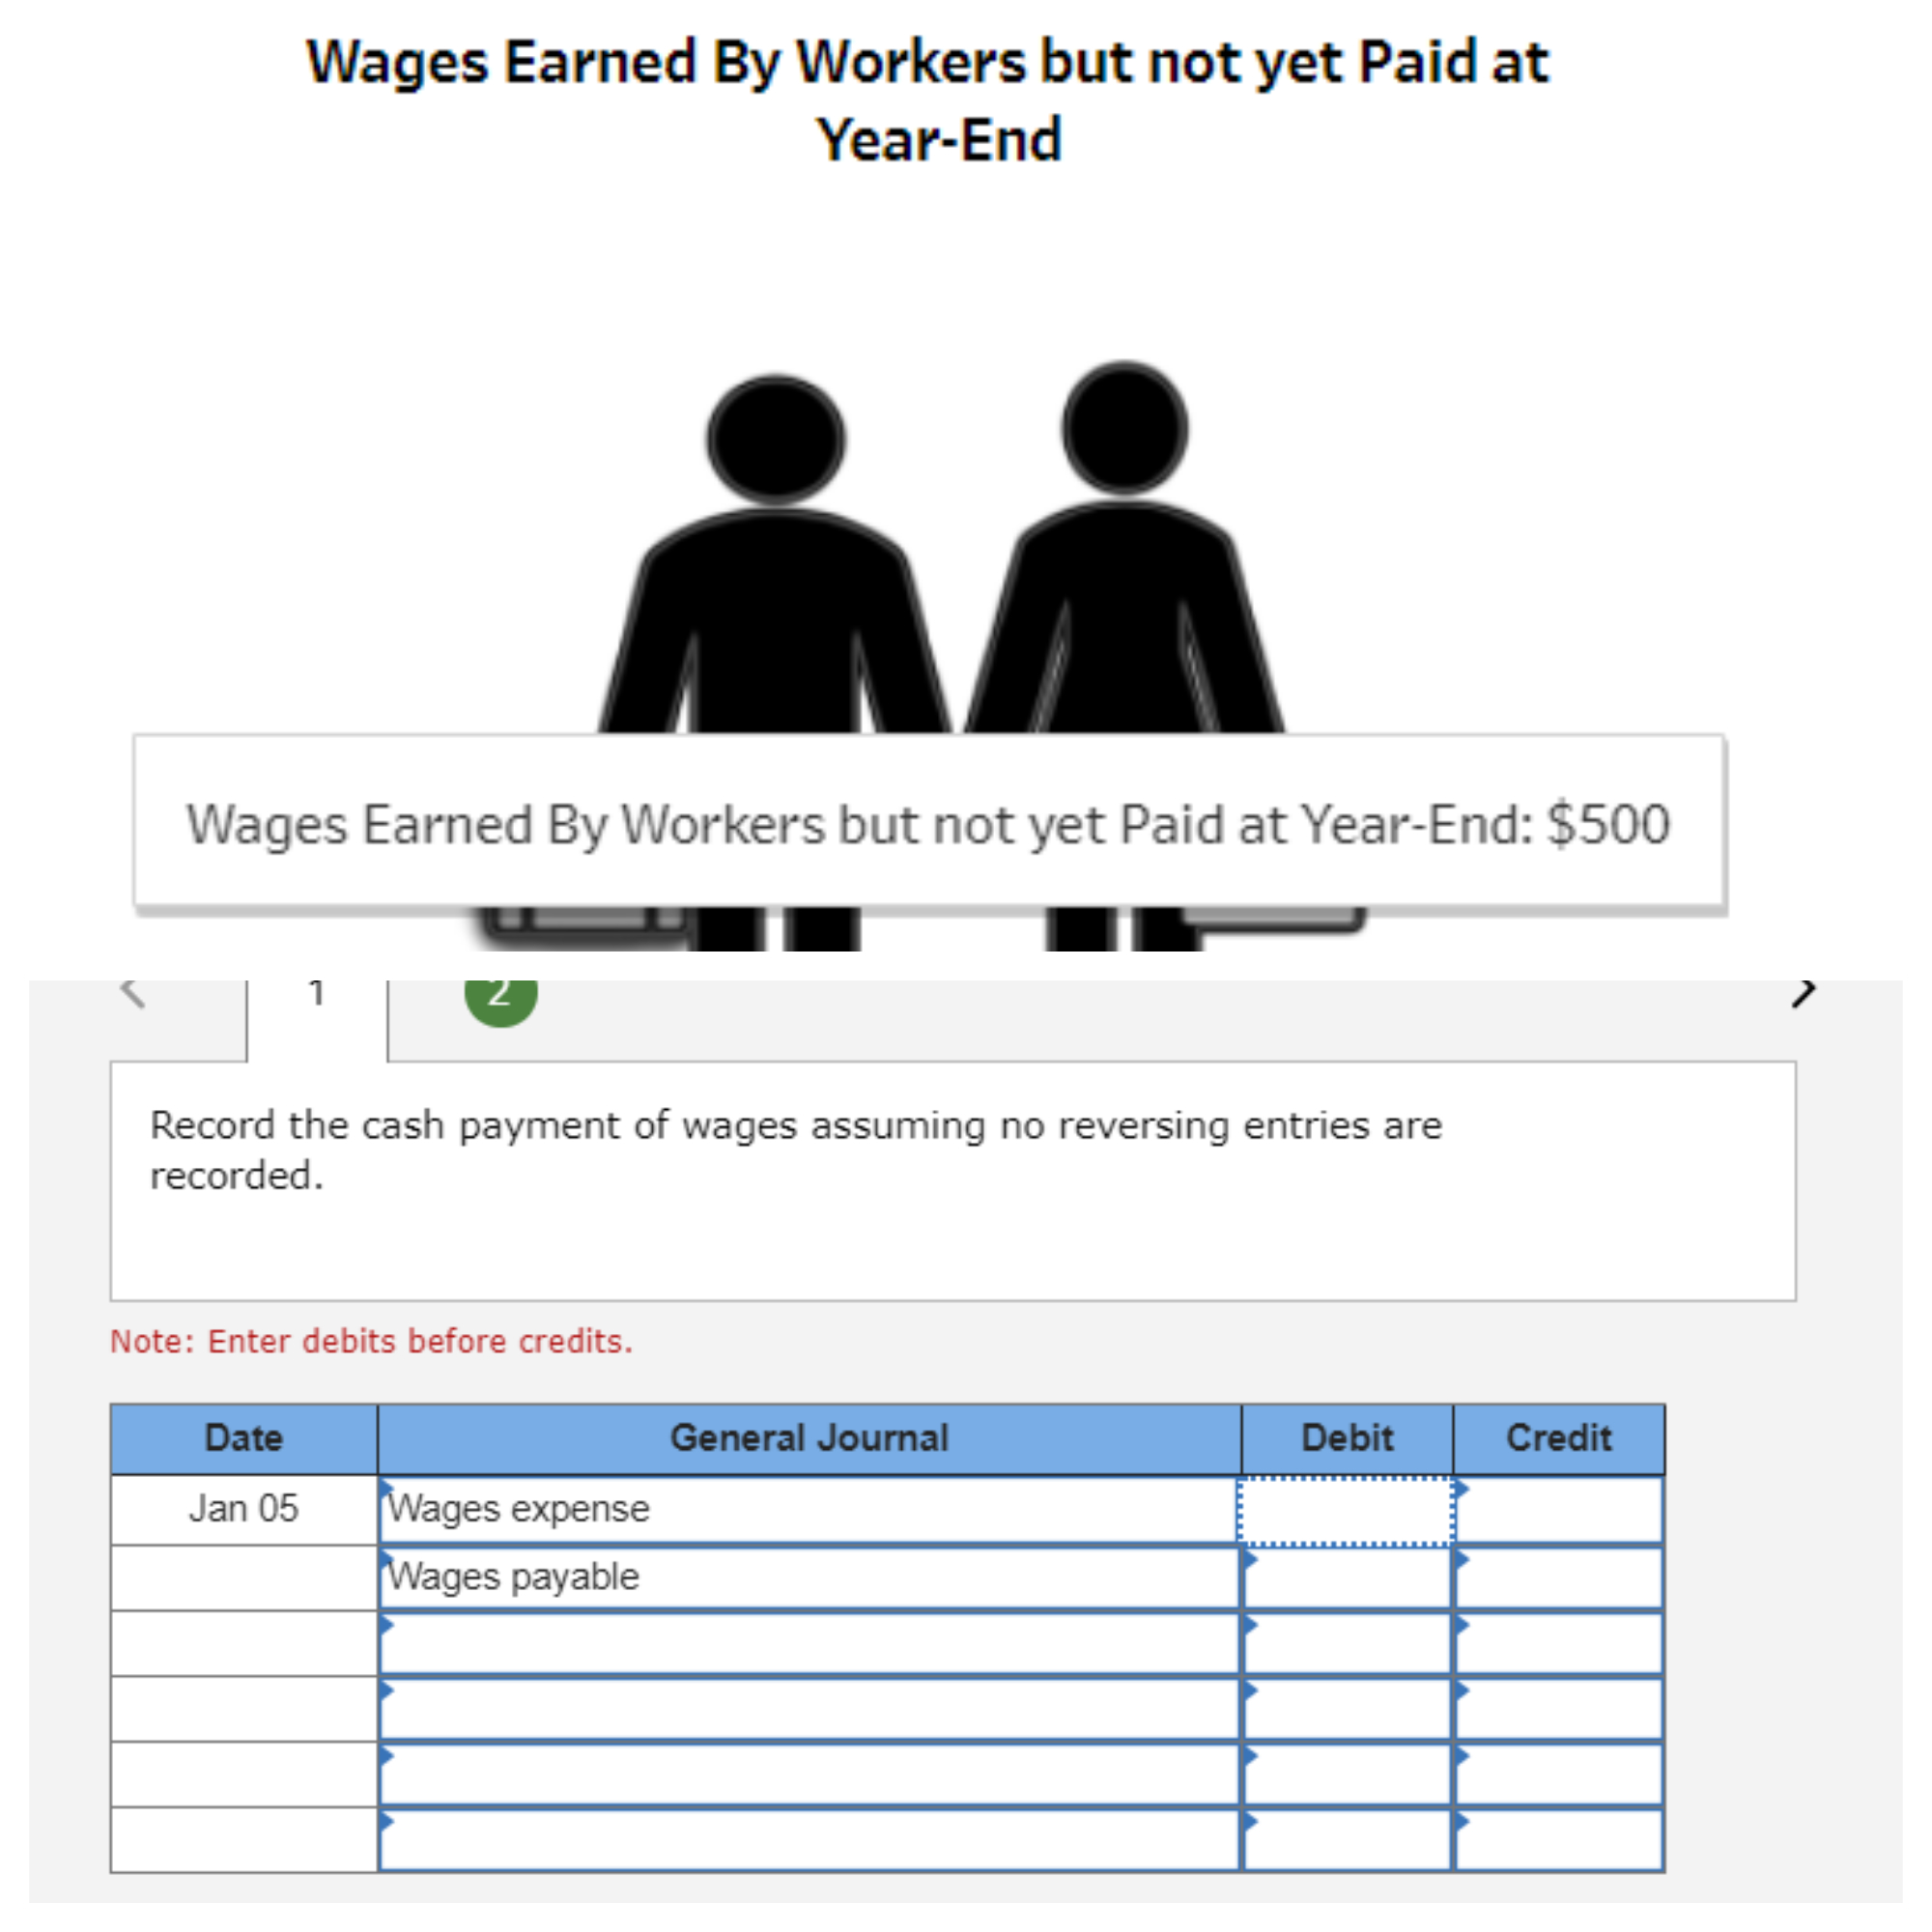 Wages Earned By Workers but not yet Paid at Year-End Wages Earned By Workers but not yet Paid at Year-End: $500 1 Record the cash payment of wages assuming no reversing entries are recorded Note: Enter debits before credits. Date General Journal Debit Credit Wages expense Wages payable Jan 05